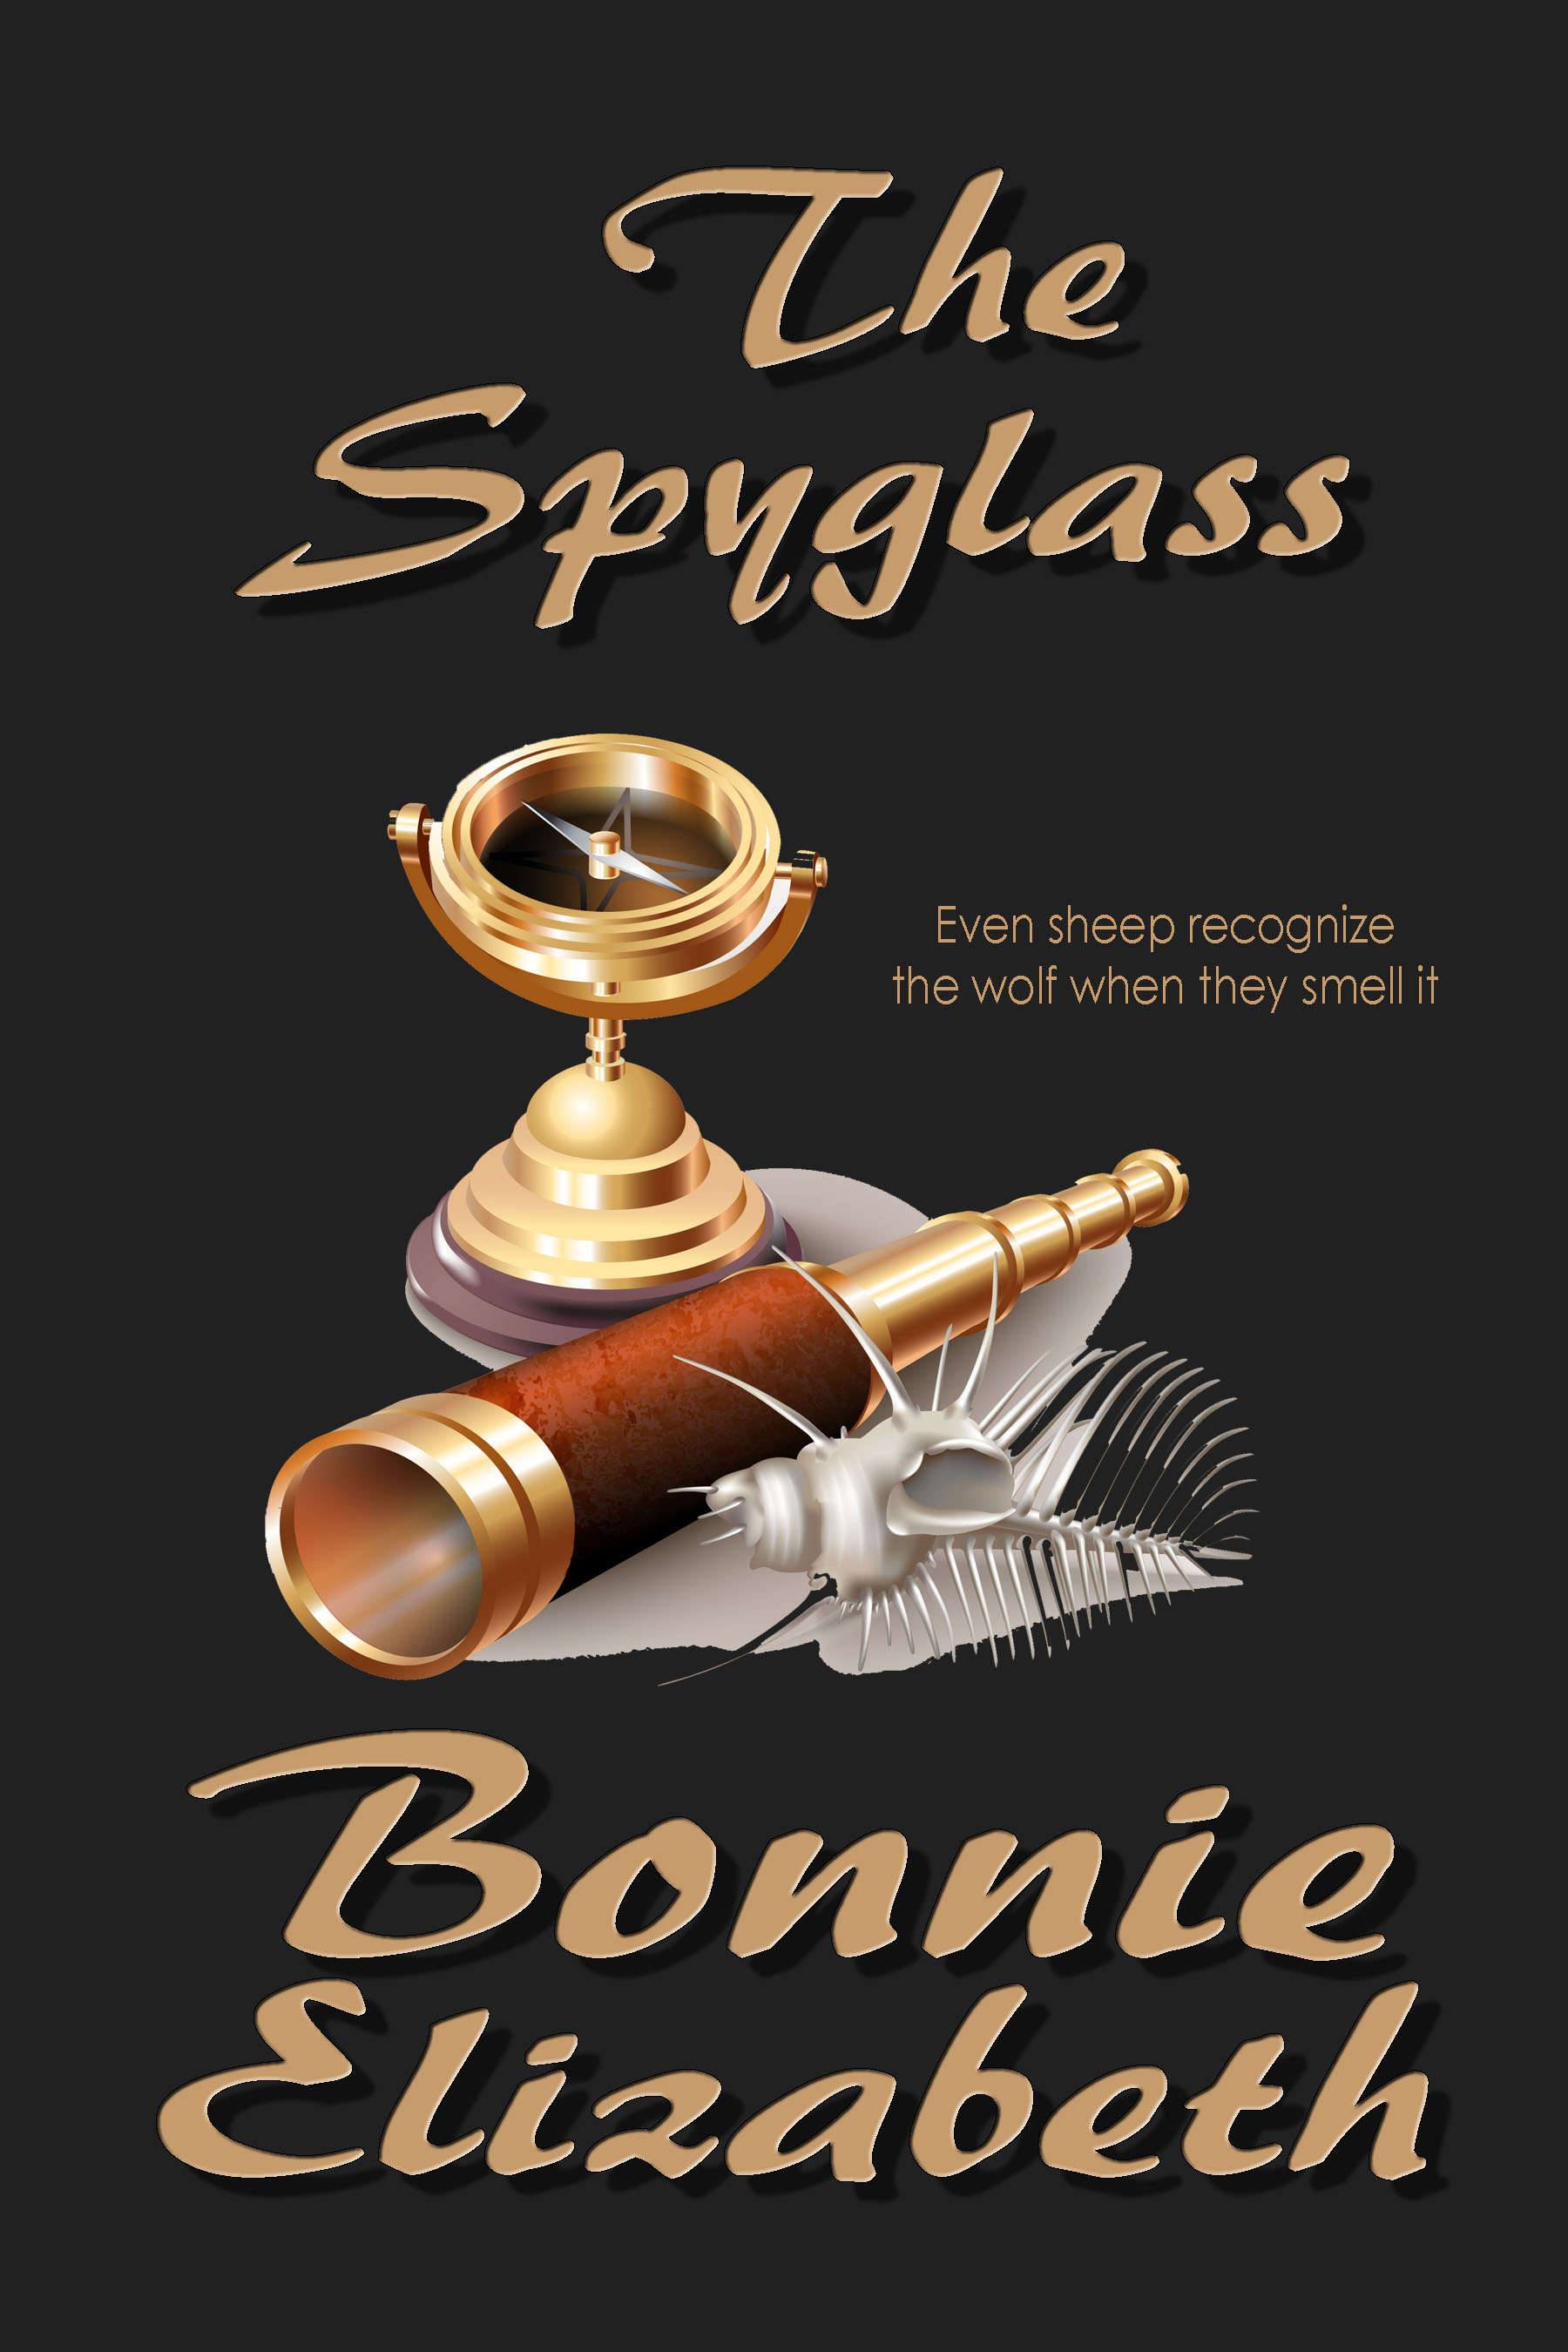 Book cover for short story the Spyglass, a spyglass, compass and shell on black background